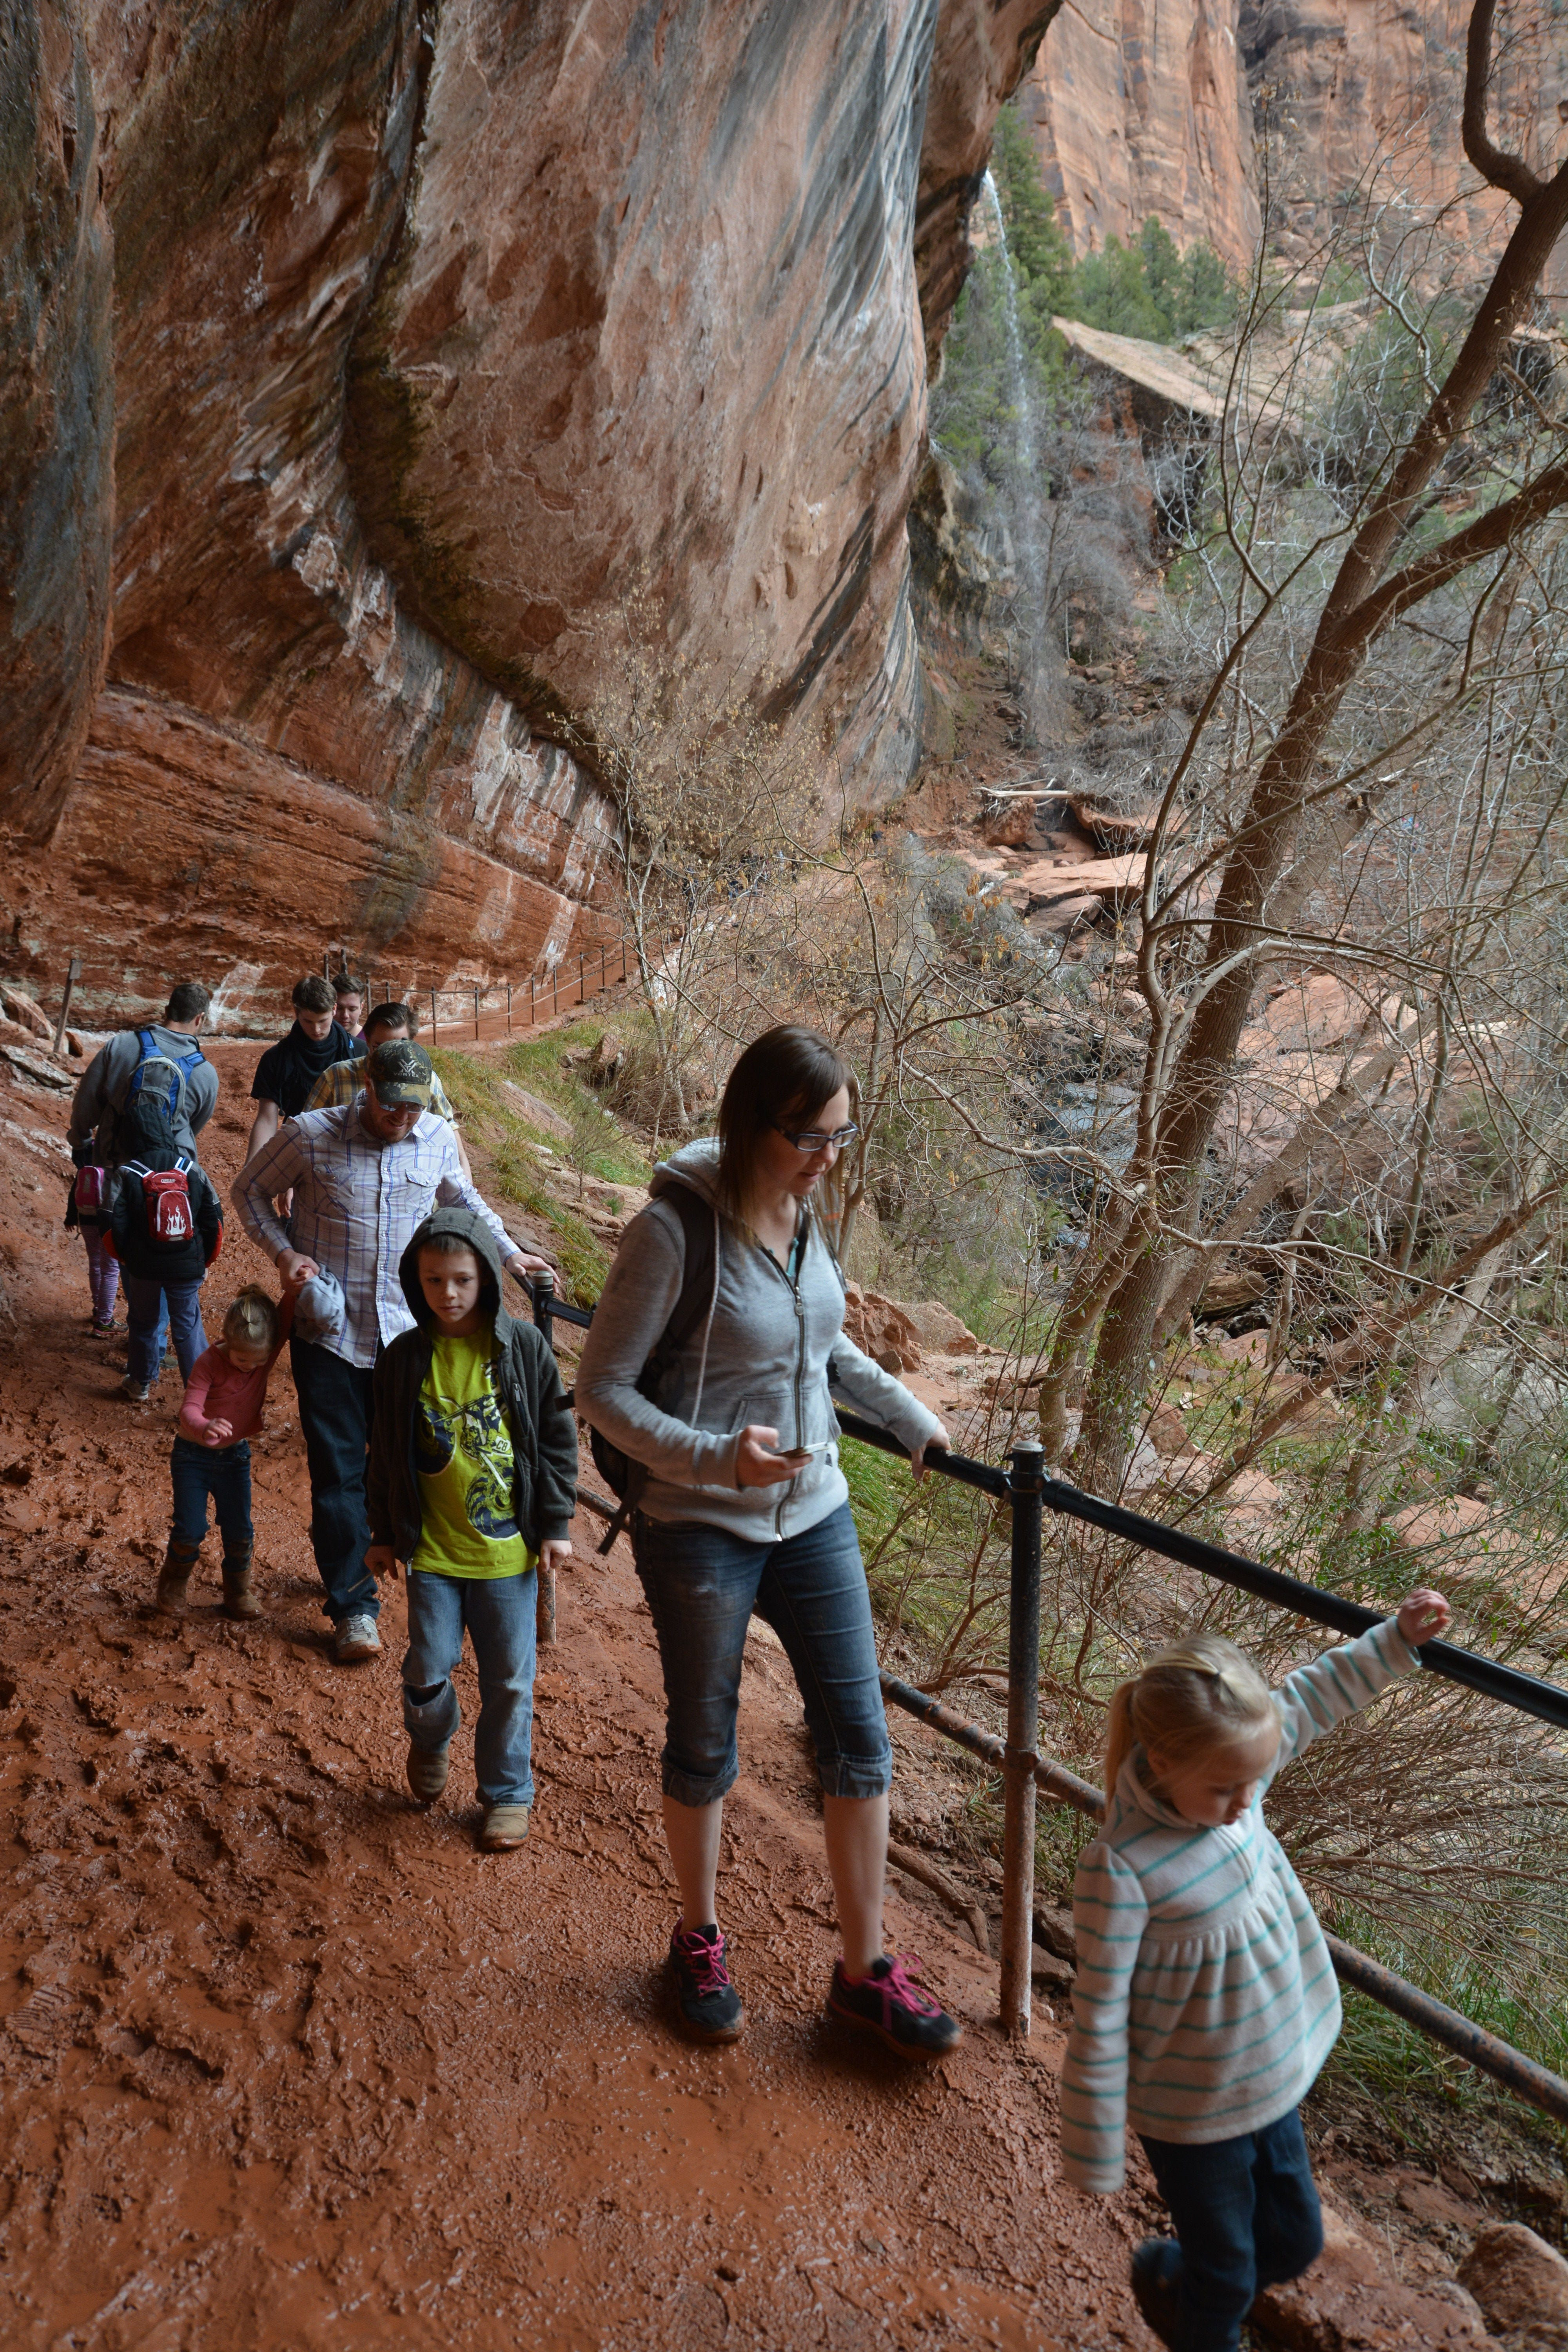 $1 million grant to help reopen Zion trail